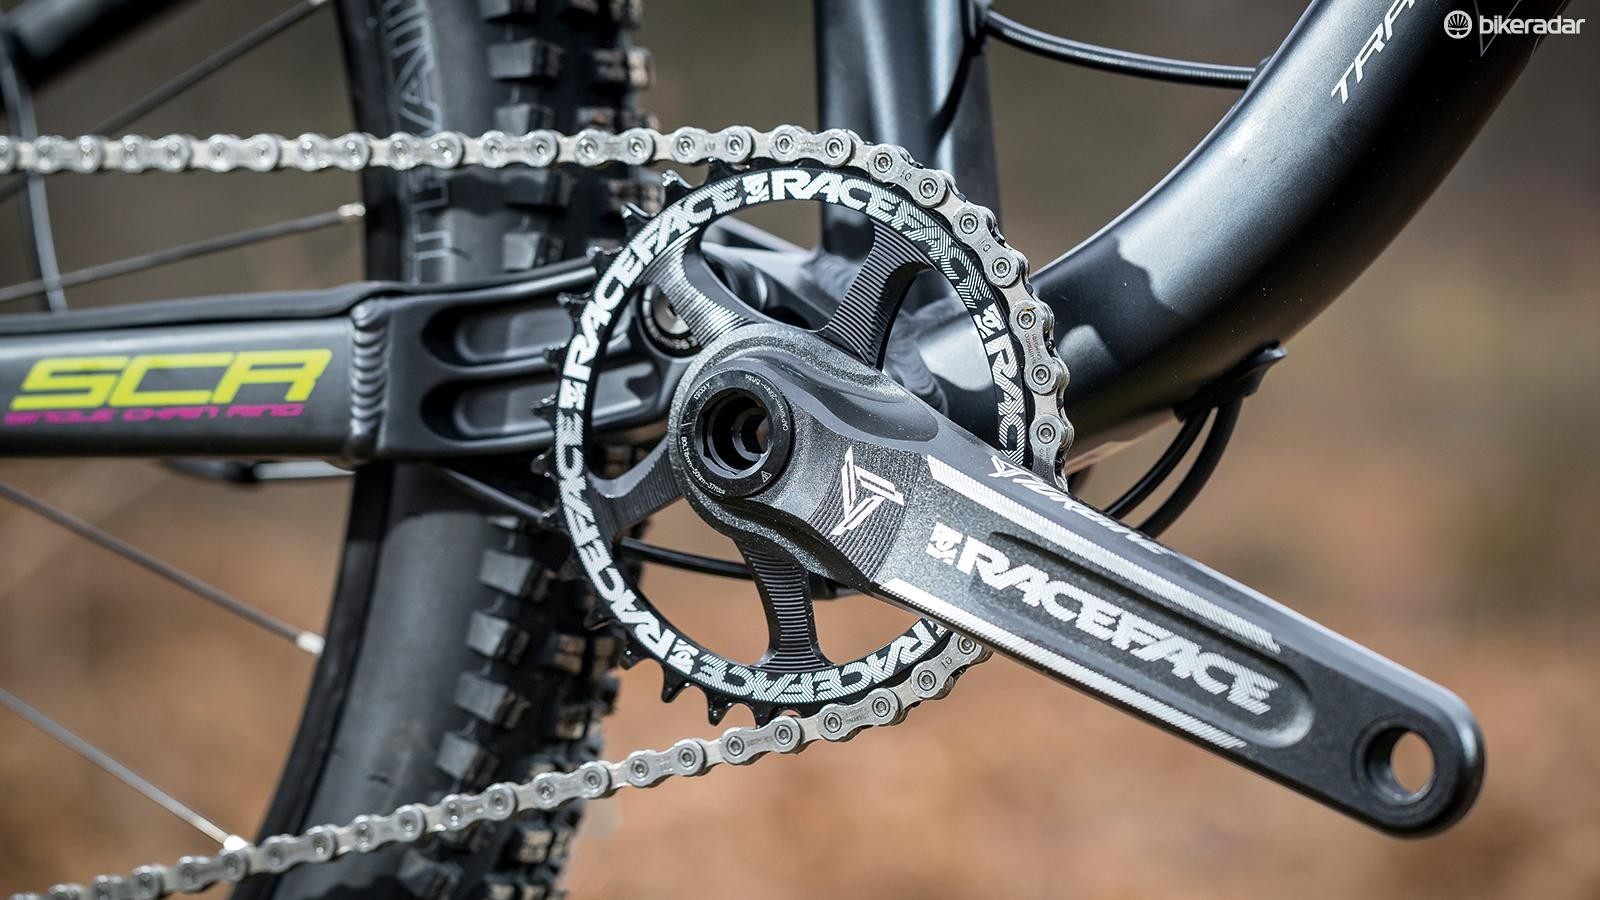 RaceFace Turbine 30t 30mm axle chainset